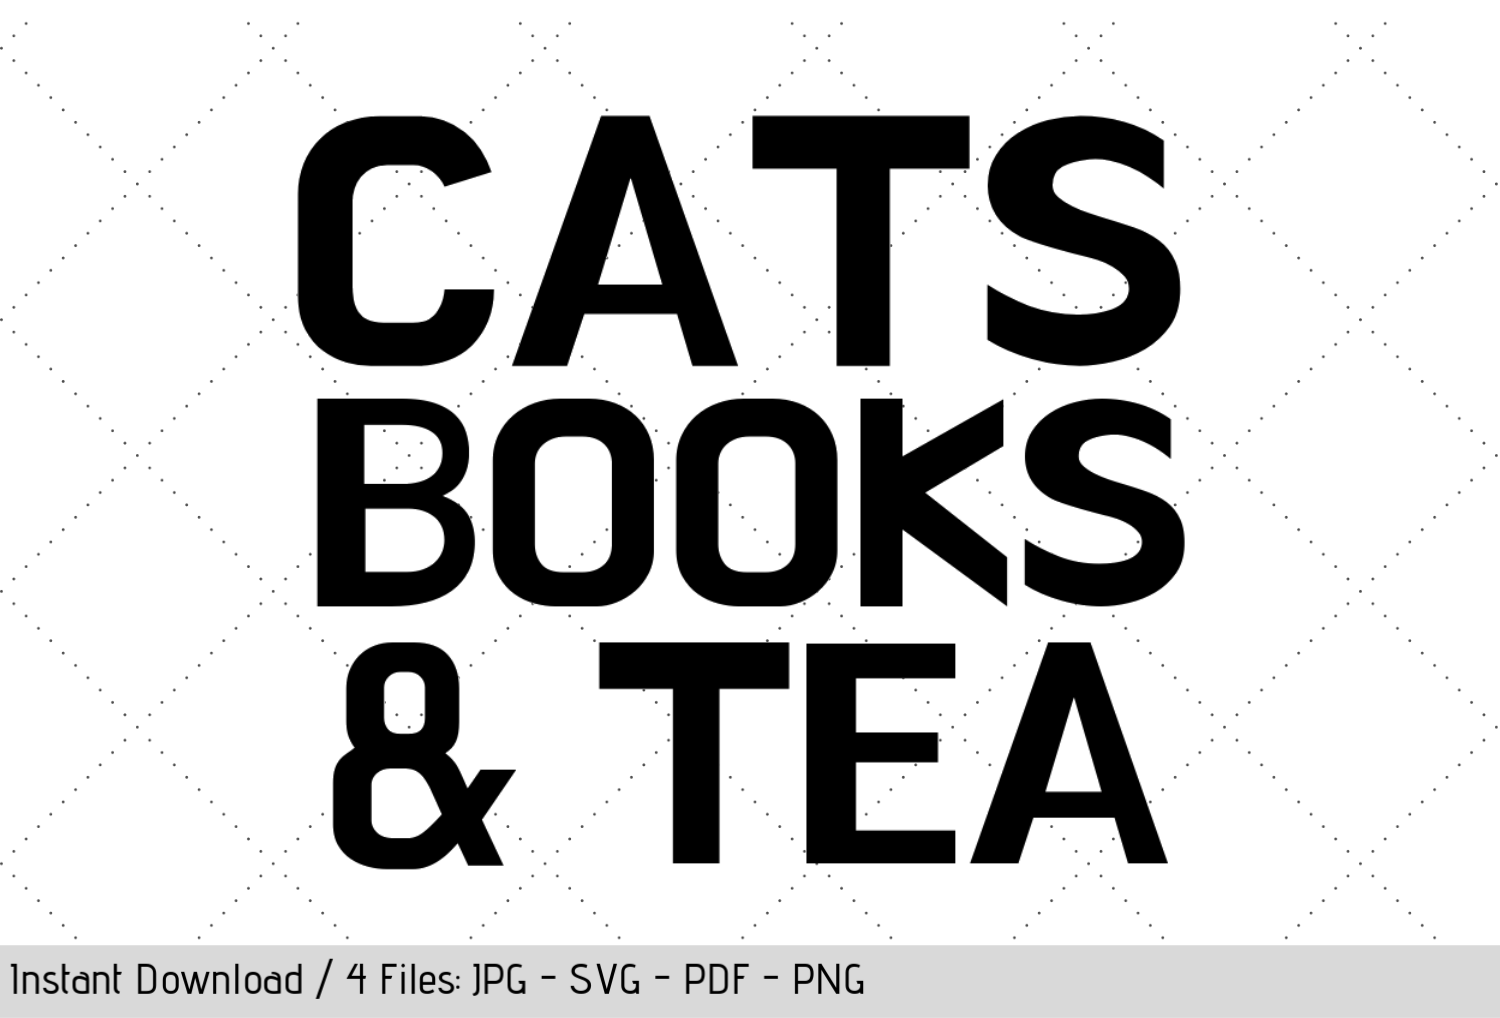 Download Free Cats Books Tea Svg Cut File Graphic By Werk It Girl Supply for Cricut Explore, Silhouette and other cutting machines.